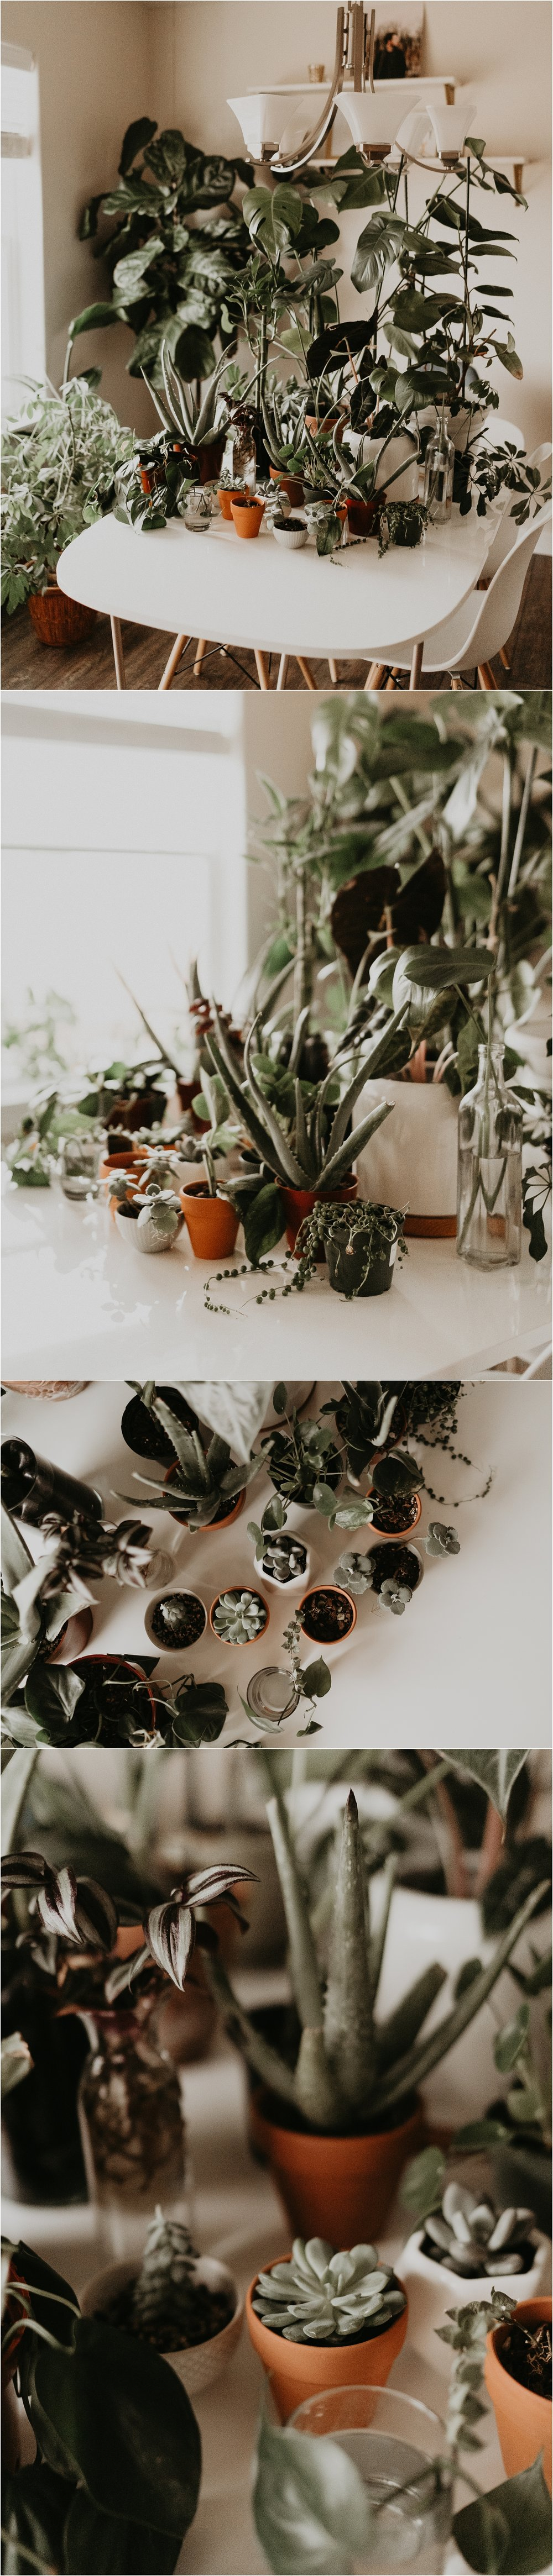 Succulent Care Boise Senior Photographer Boise Boudoir Photographer Makayla Madden Plant Lady Indoor House Plant Care Advice Tips Boise Greenhouses Edwards North End Organic Nursery 5-1-1 Potting Mix